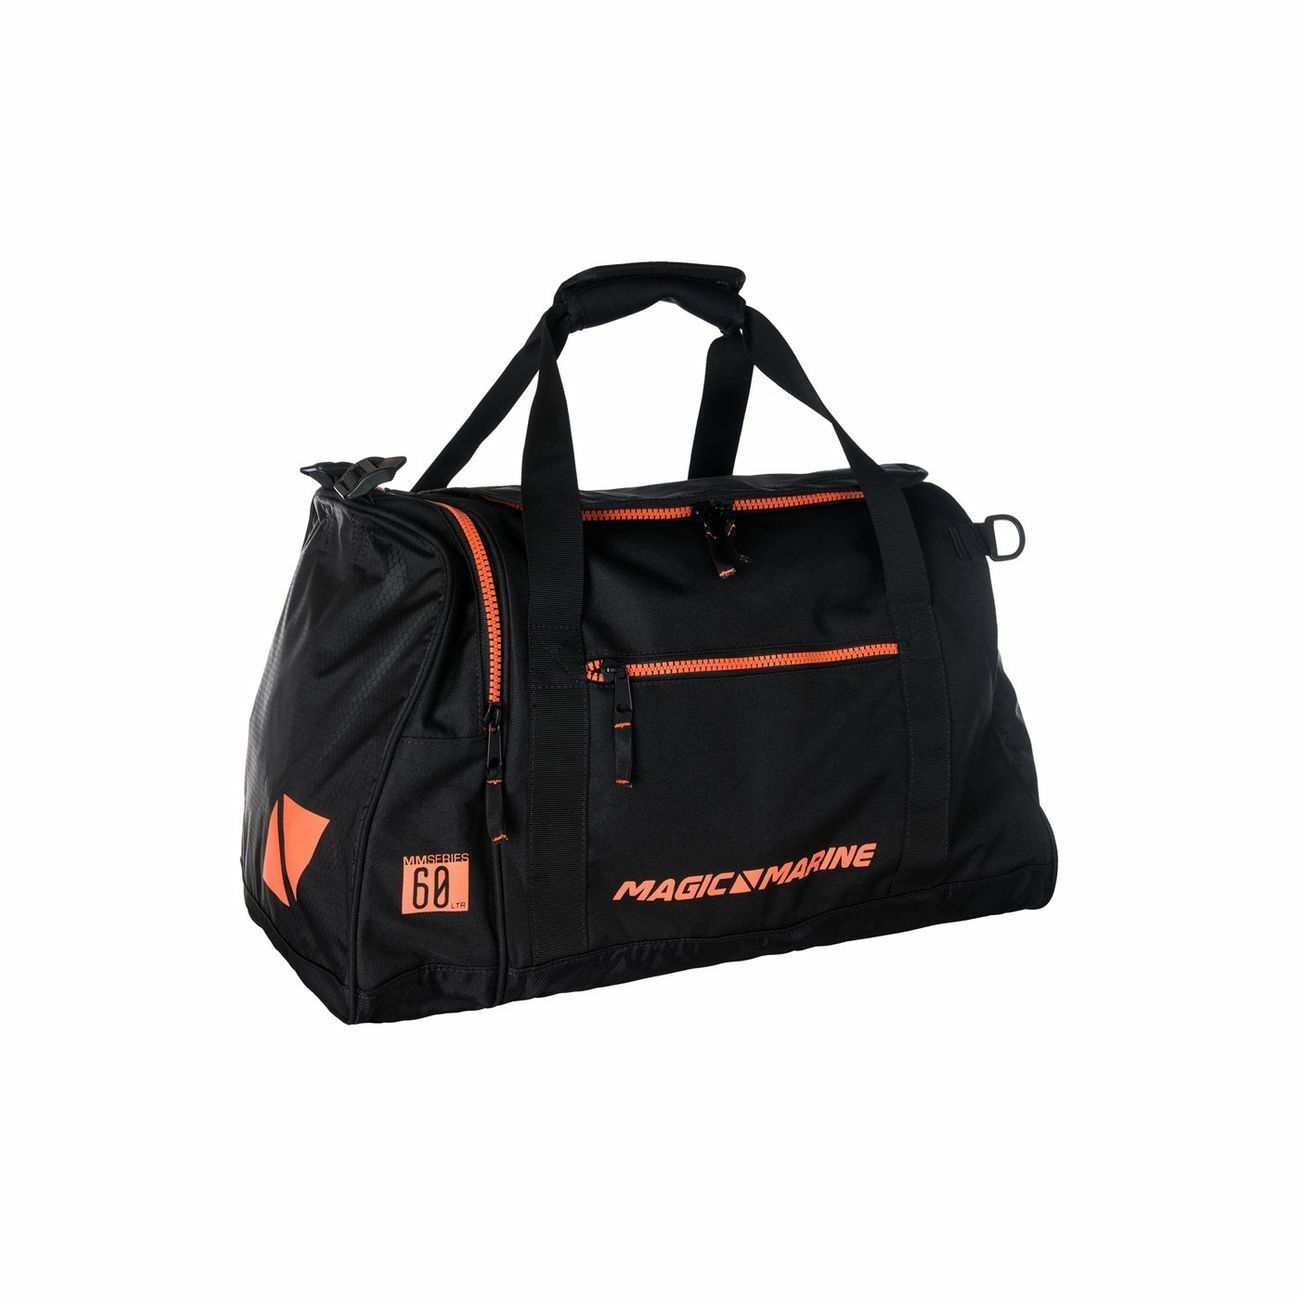 Magic Marine Sport Bag High-Quality Sailing Bag 60l Ideal for the Water Sports